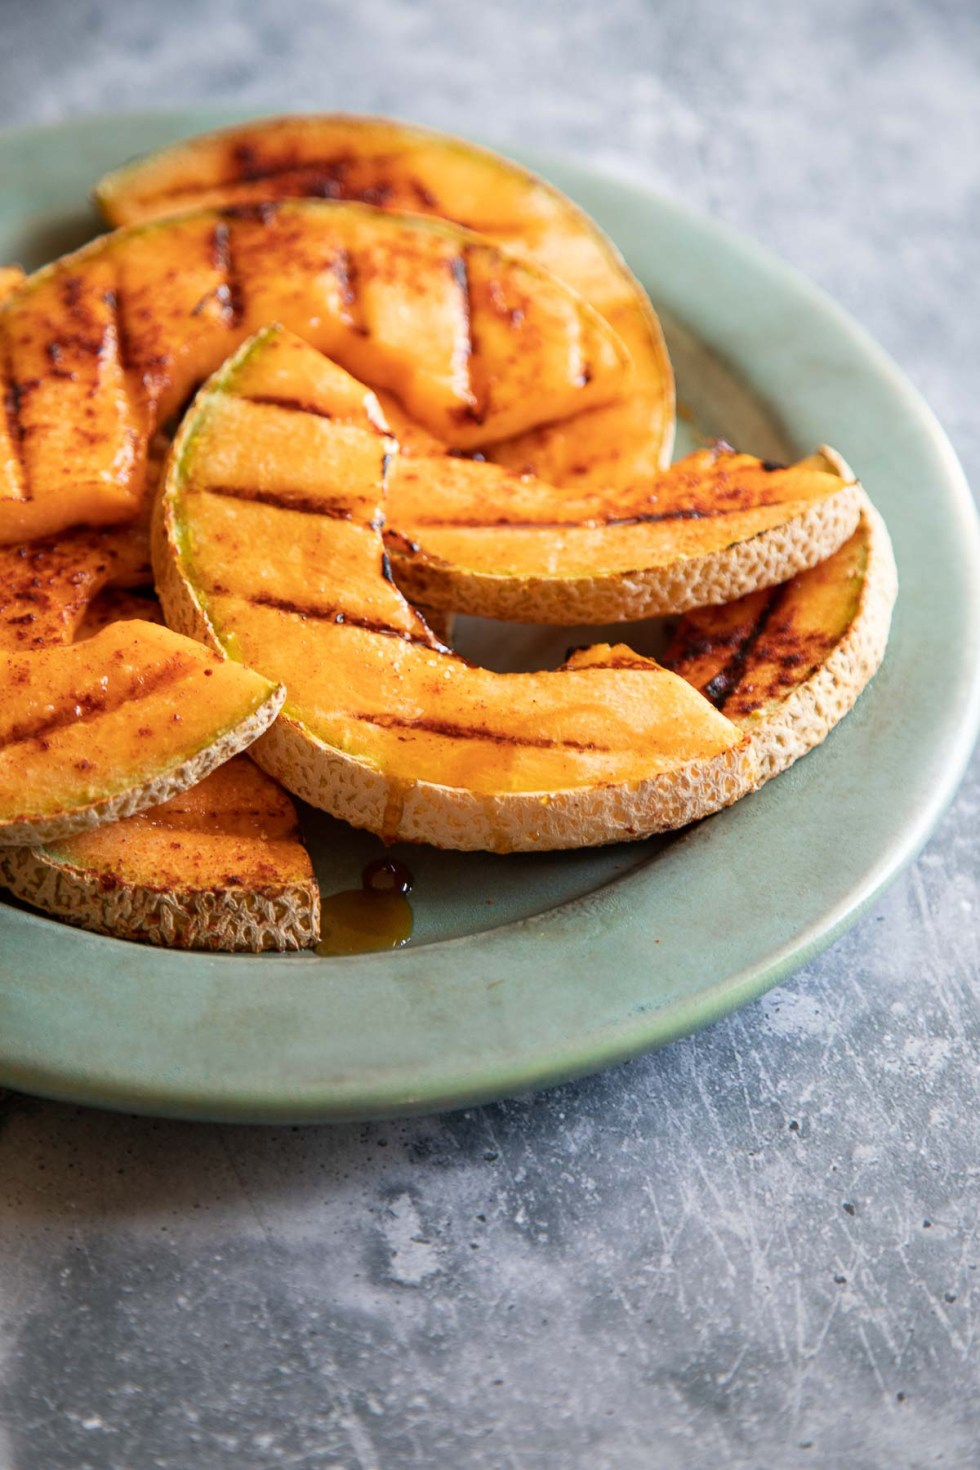 Grilled Cantaloupe on Pale Turquoise Plate